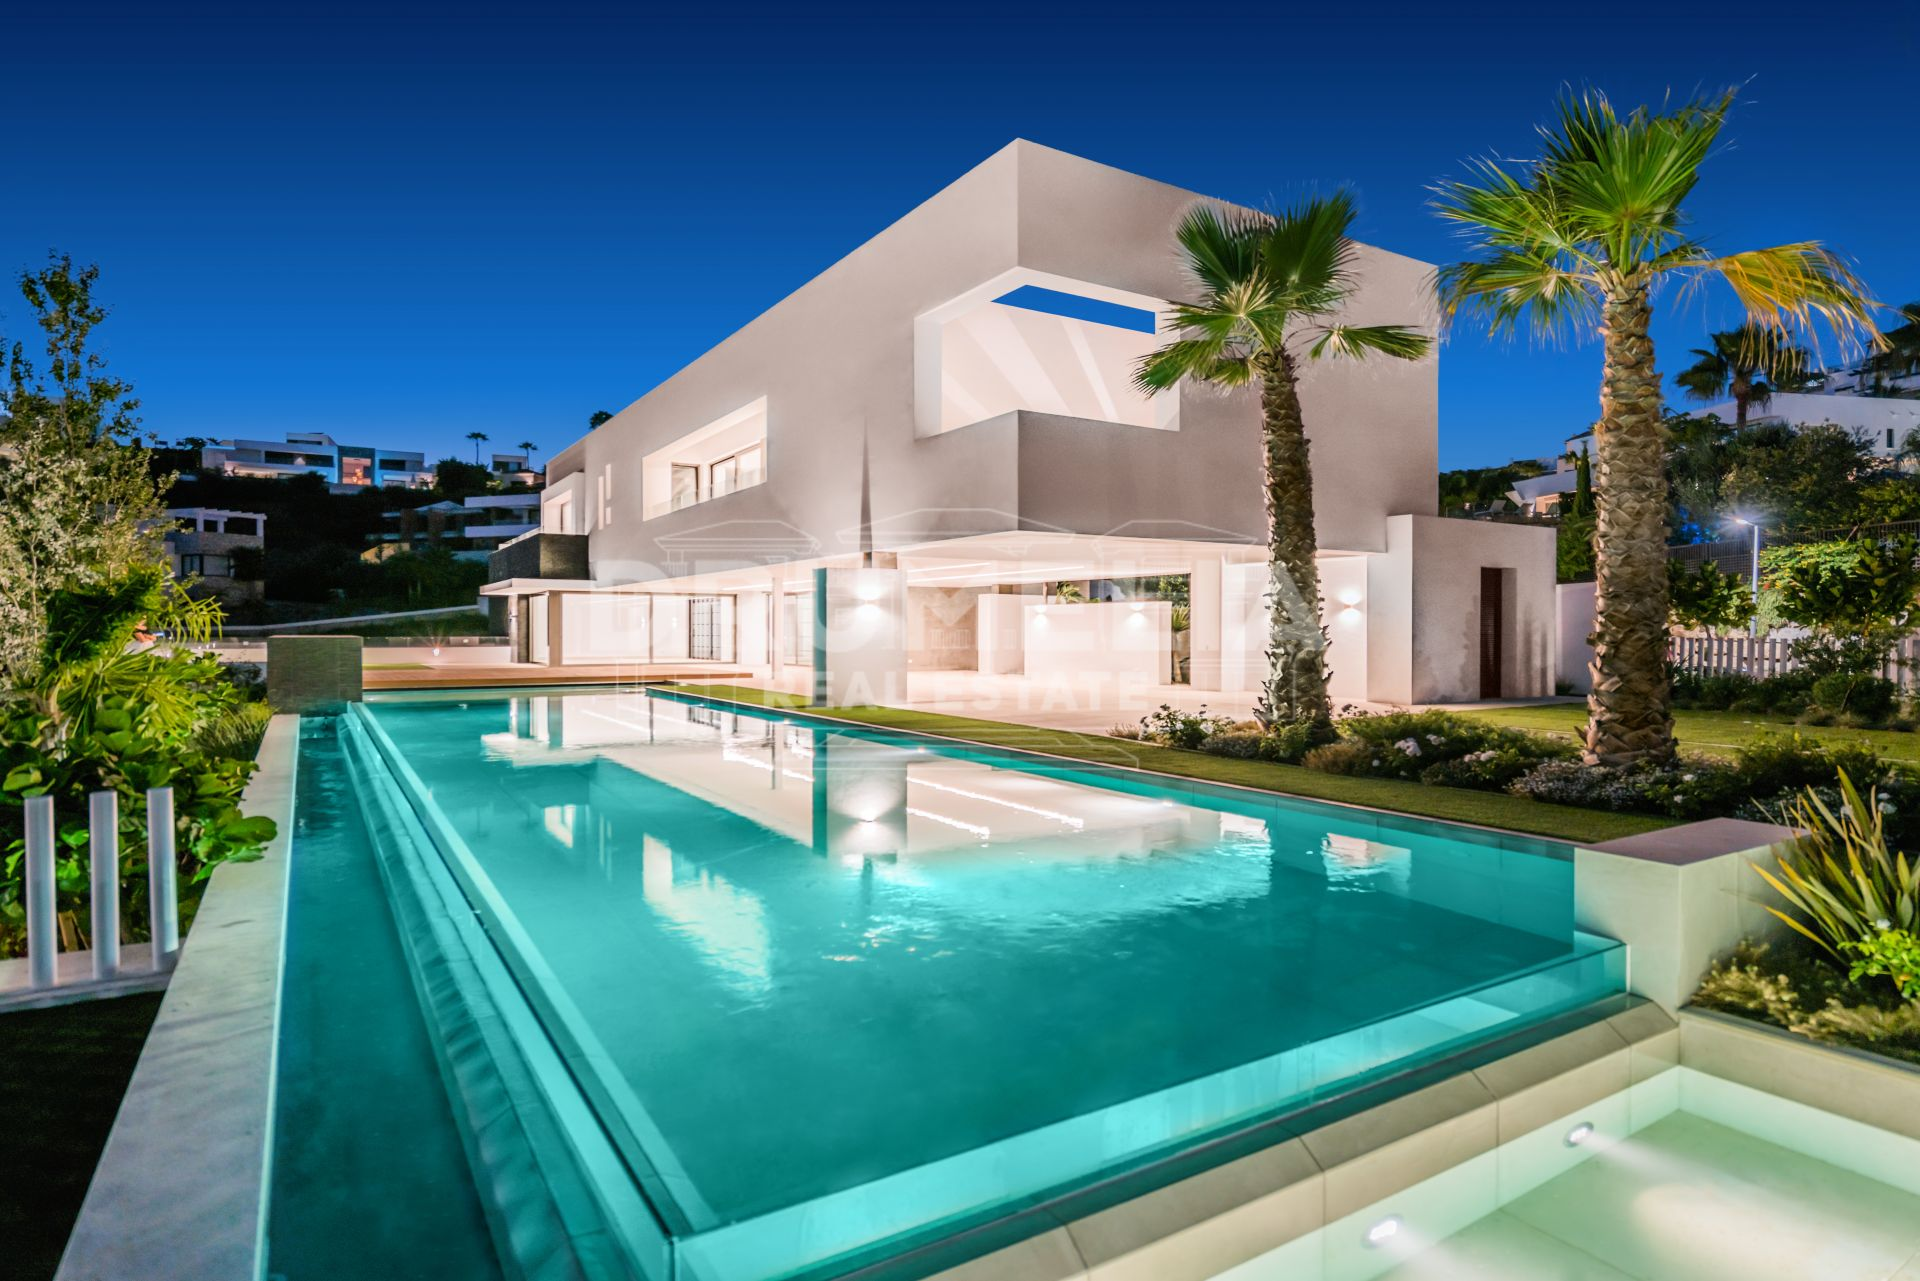 Benahavis, Brand New Stylish Modern Villa in La Alqueria, Benahavis